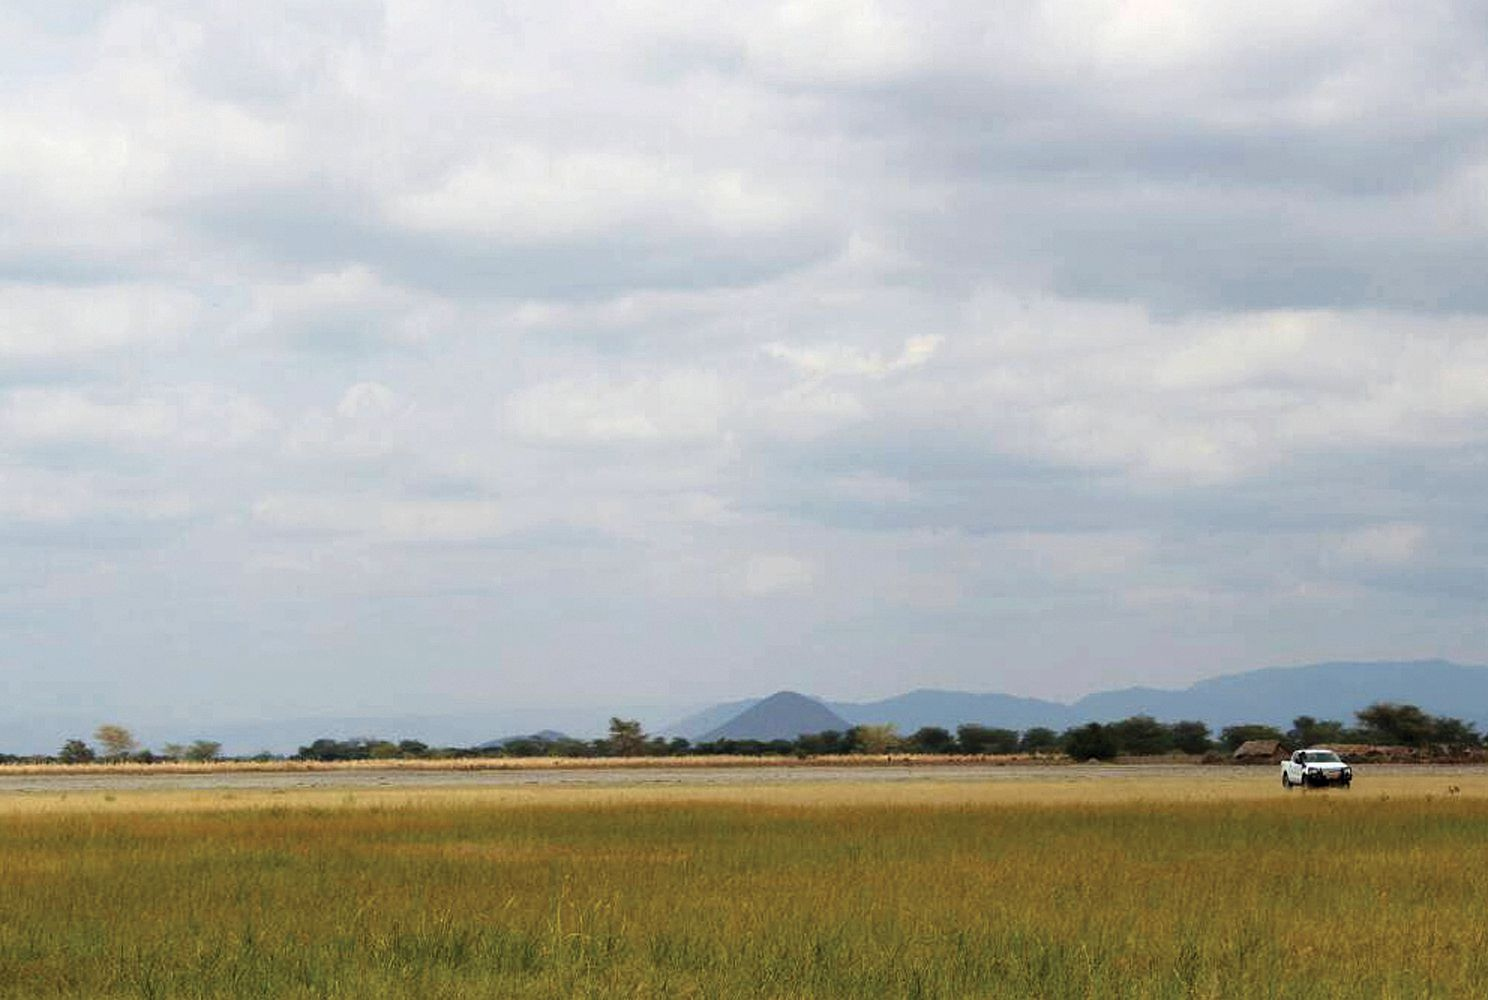 Dry and wet season grazing areas demarcated in Tanzania